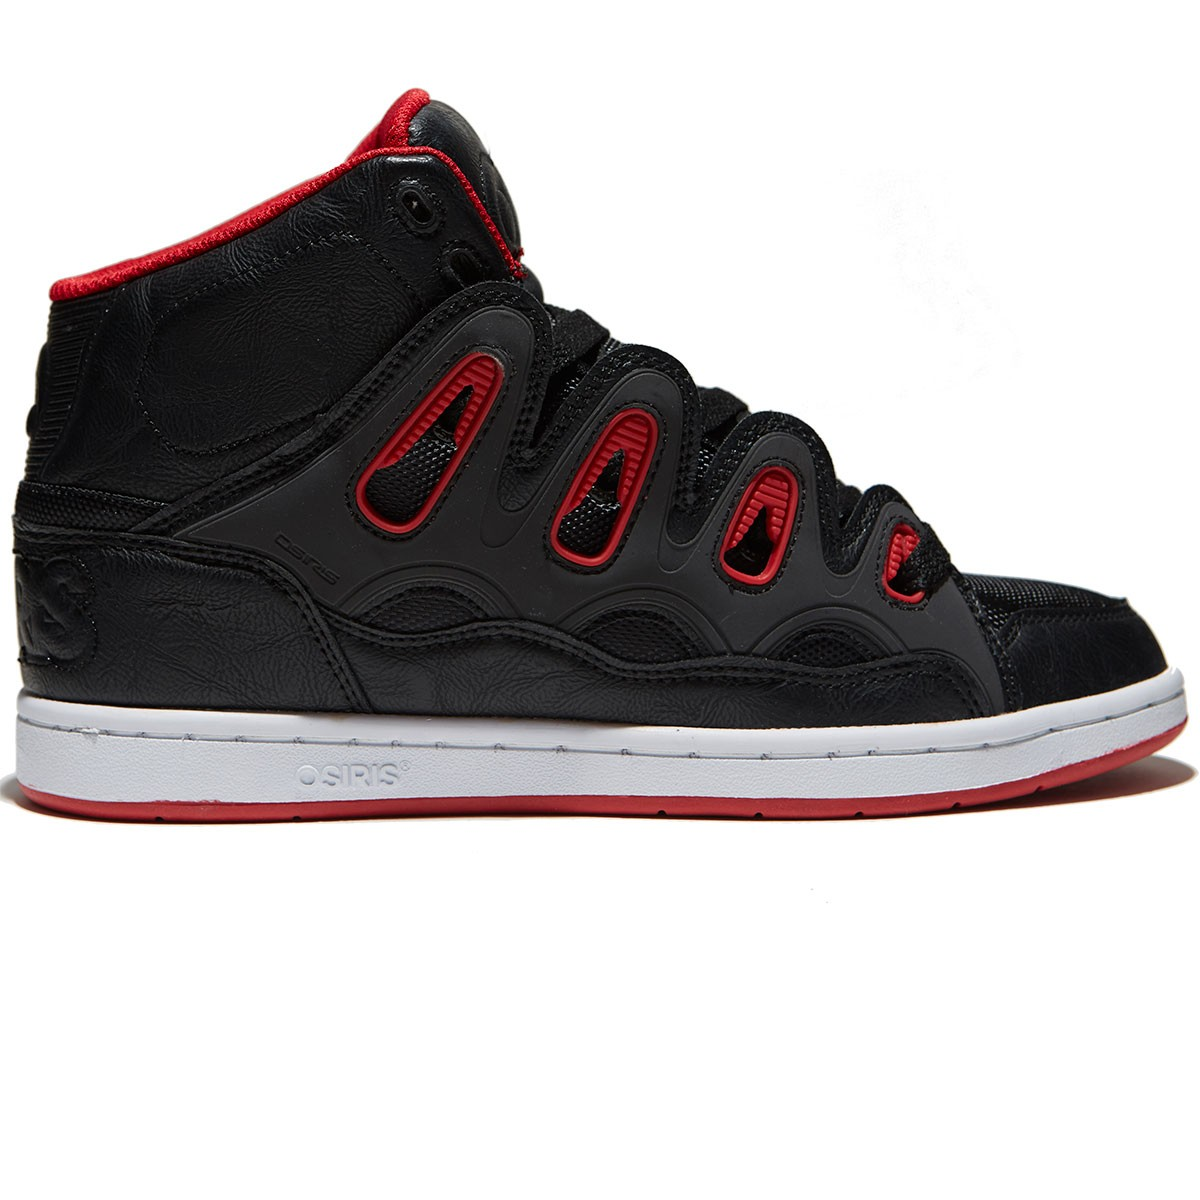 All Red Osiris Shoes